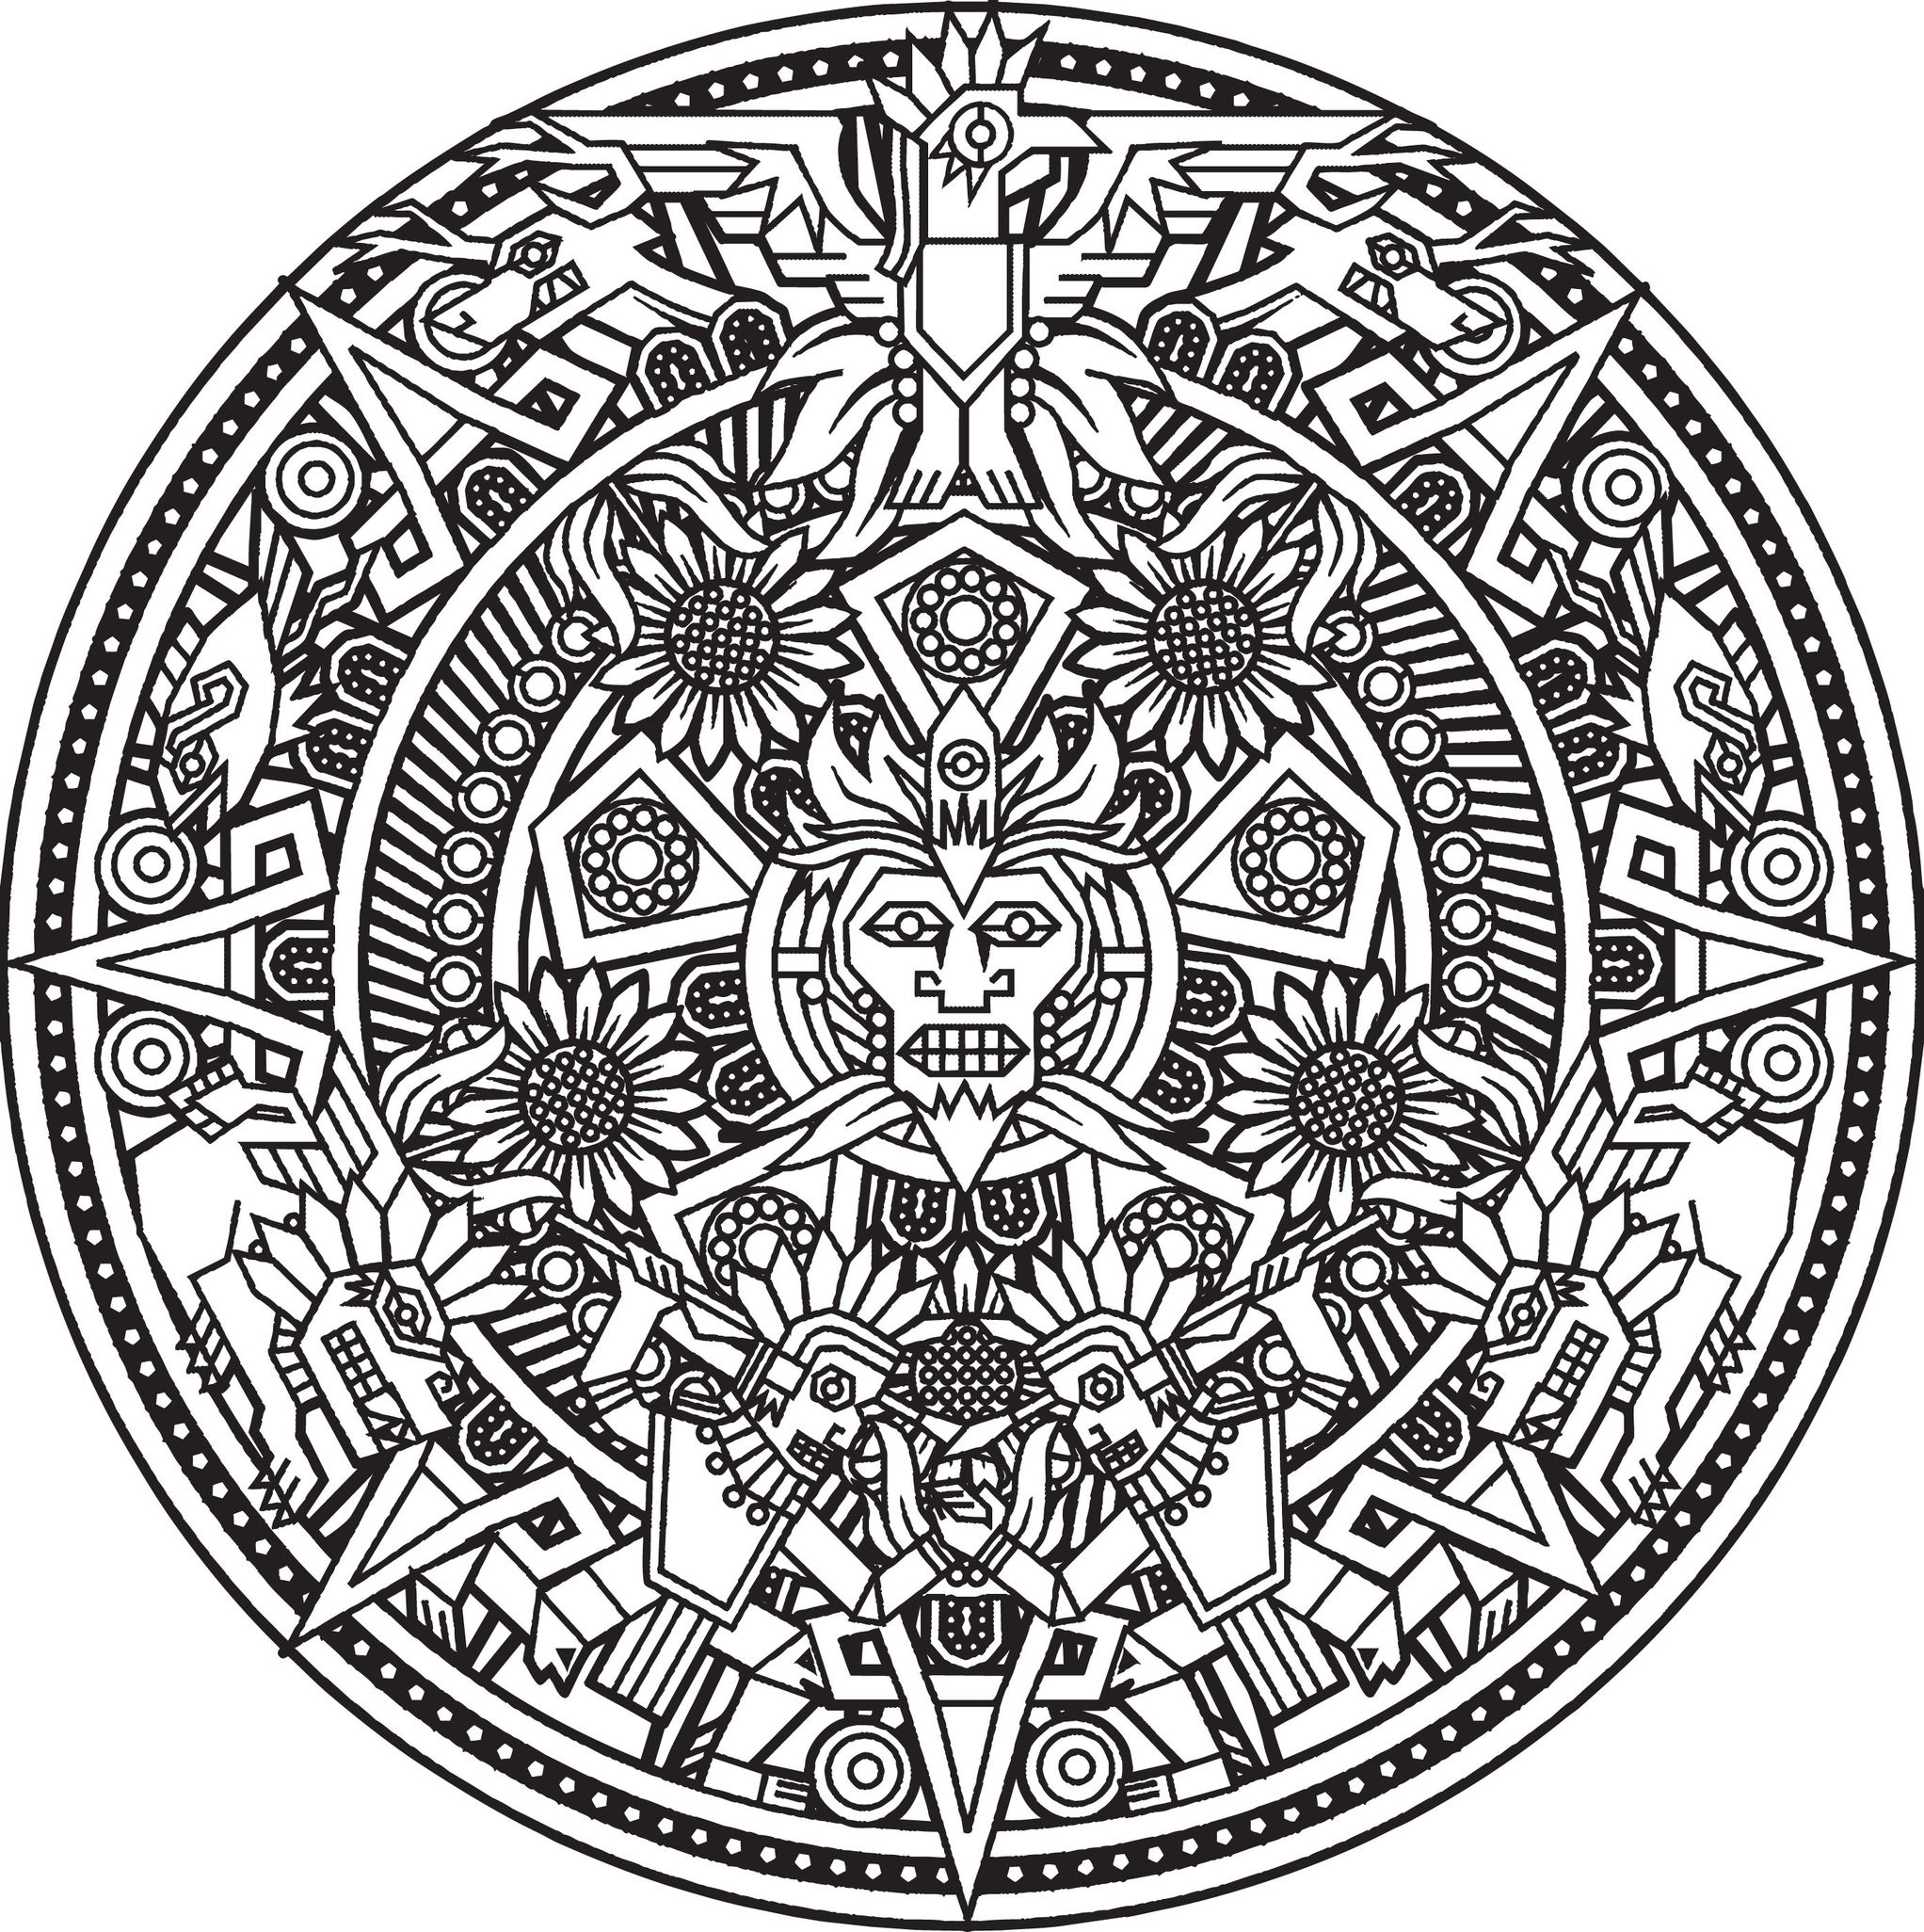 Mayan Calendar Drawing Easy : Aztec mandala mandalas with characters